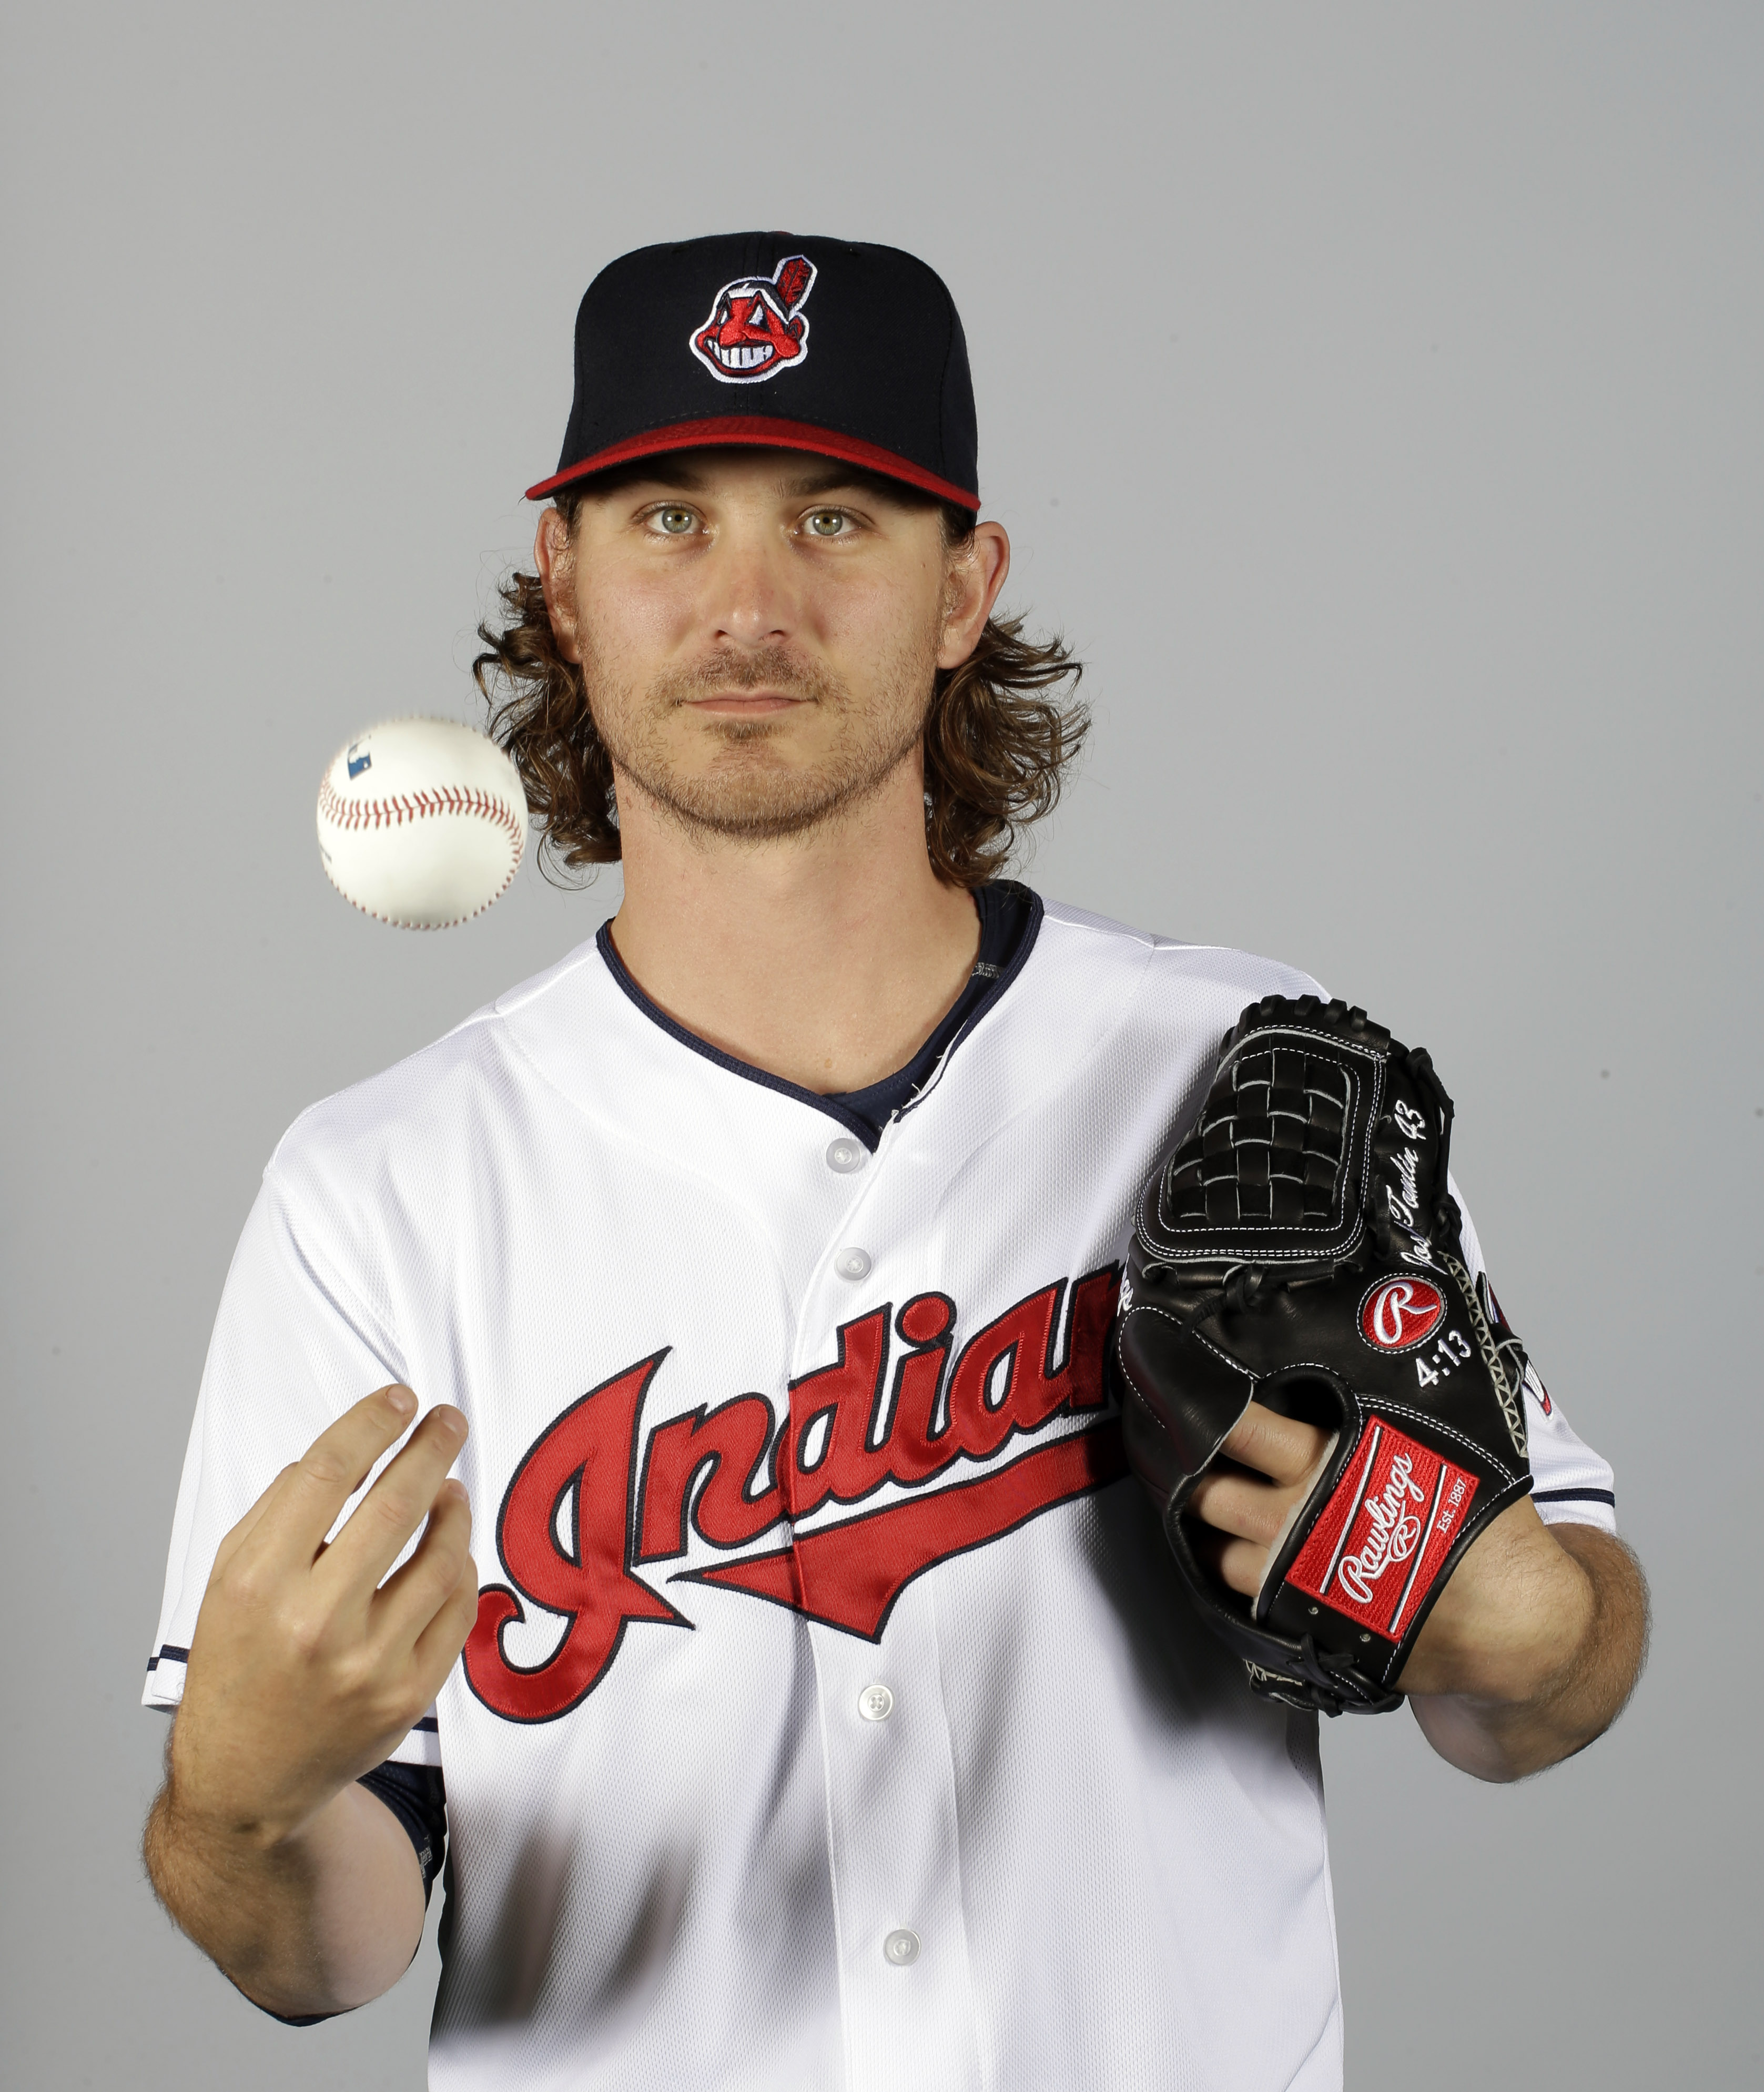 FILe - This is a 2015 file photo showing Josh Tomlin of the Cleveland Indians baseball team. Right-hander Josh Tomlin and the Cleveland Indians have agreed to a two-year contract, a deal that includes a club option for 2017. (AP Photo/Darron Cummings, Fil